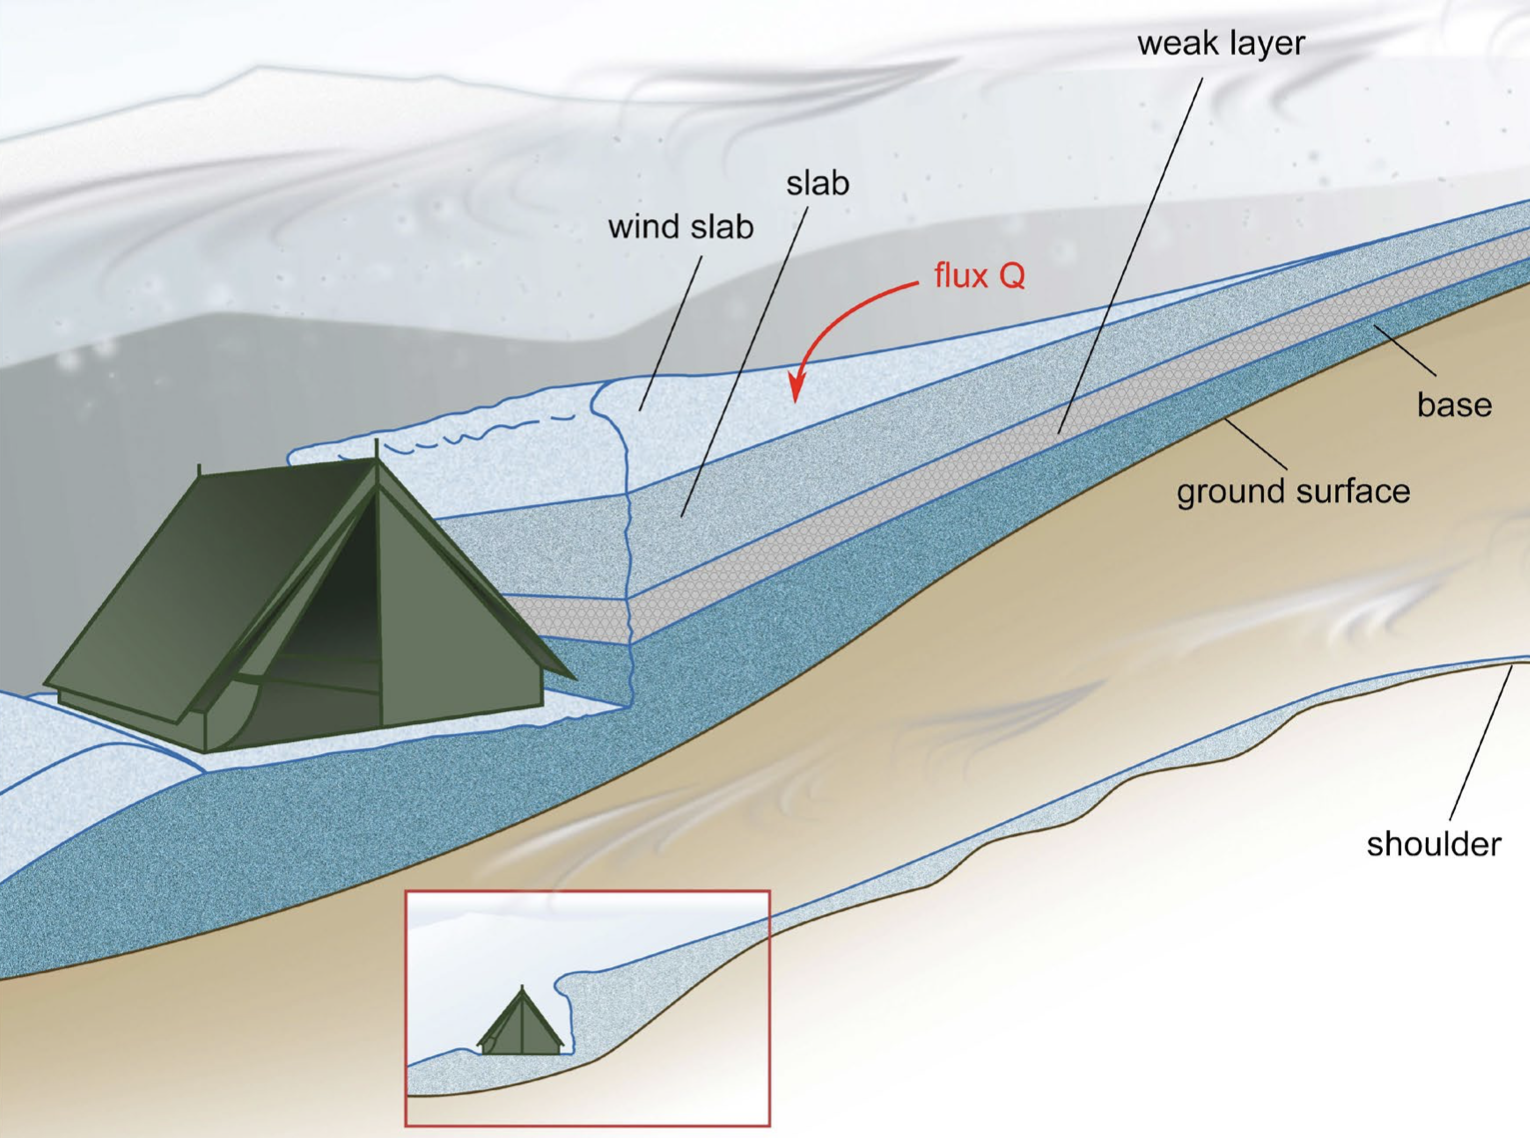 Configuration of the Dyatlov group's tent installed on a flat surface after making a cut in the slope below a small shoulder.